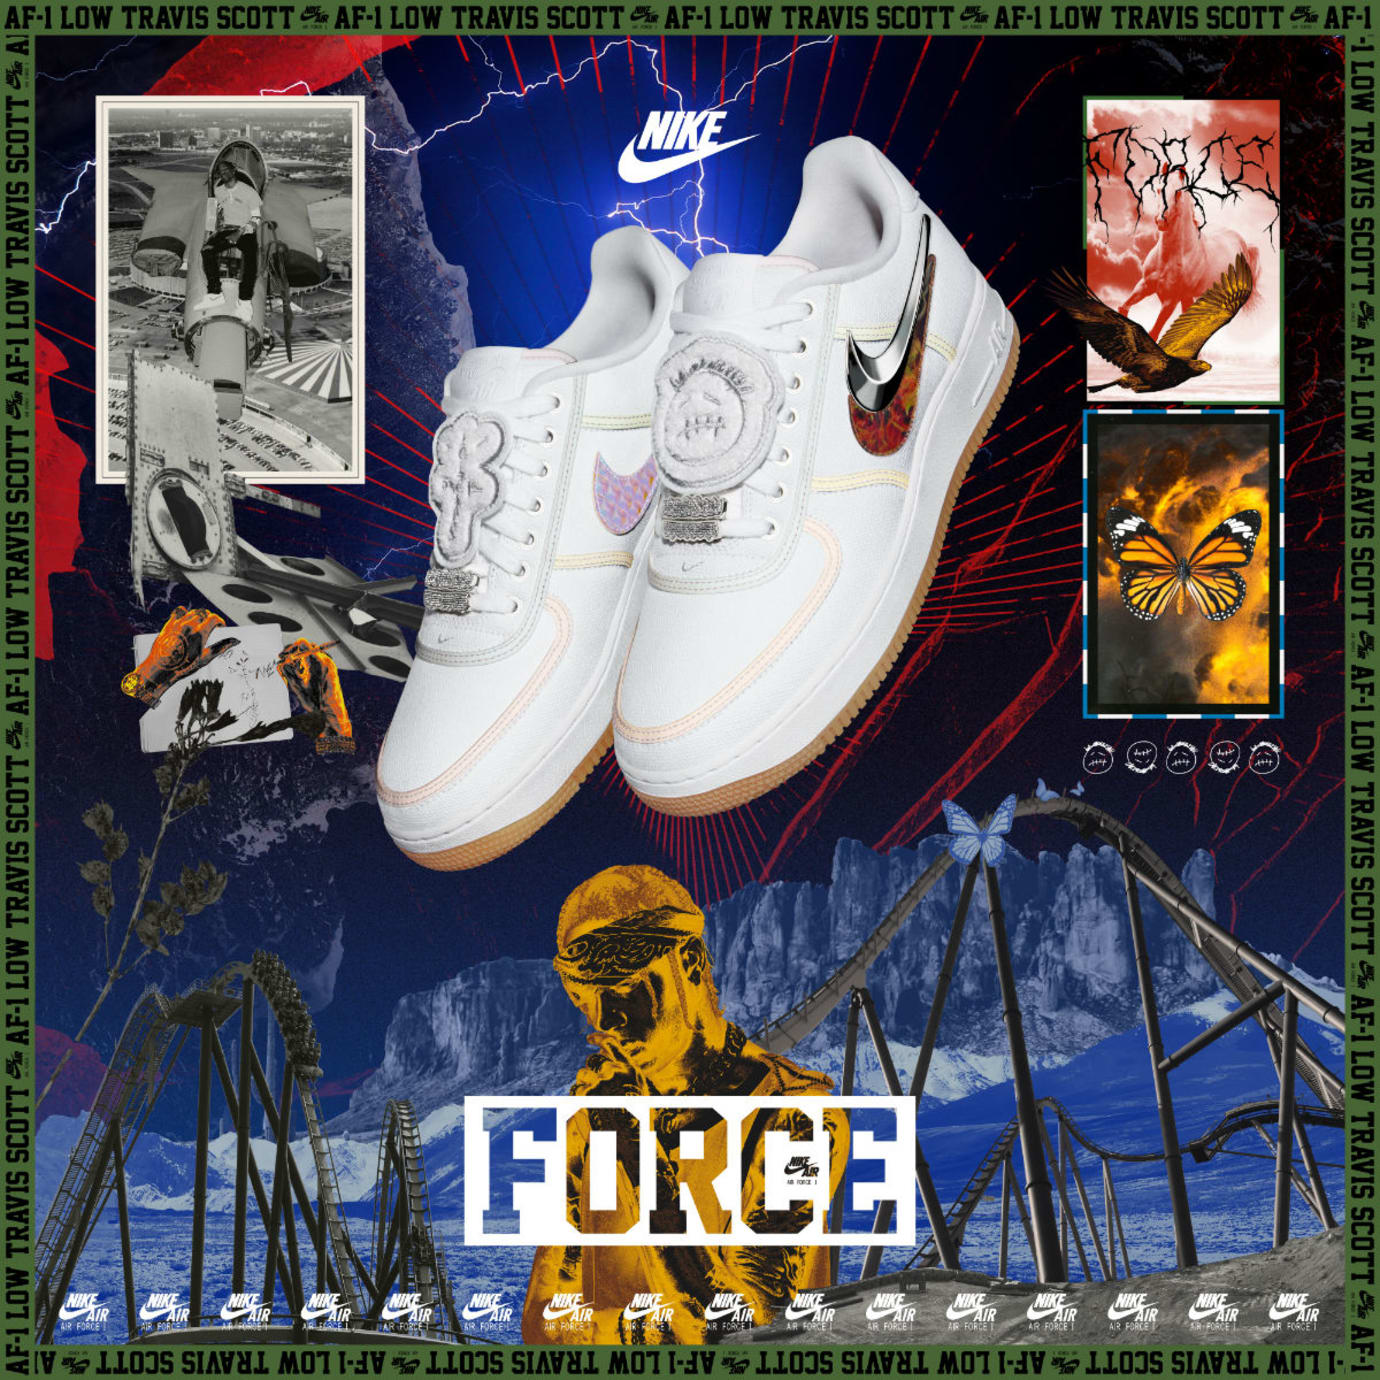 Travis Scott x Nike Air Force 1 Low Poster